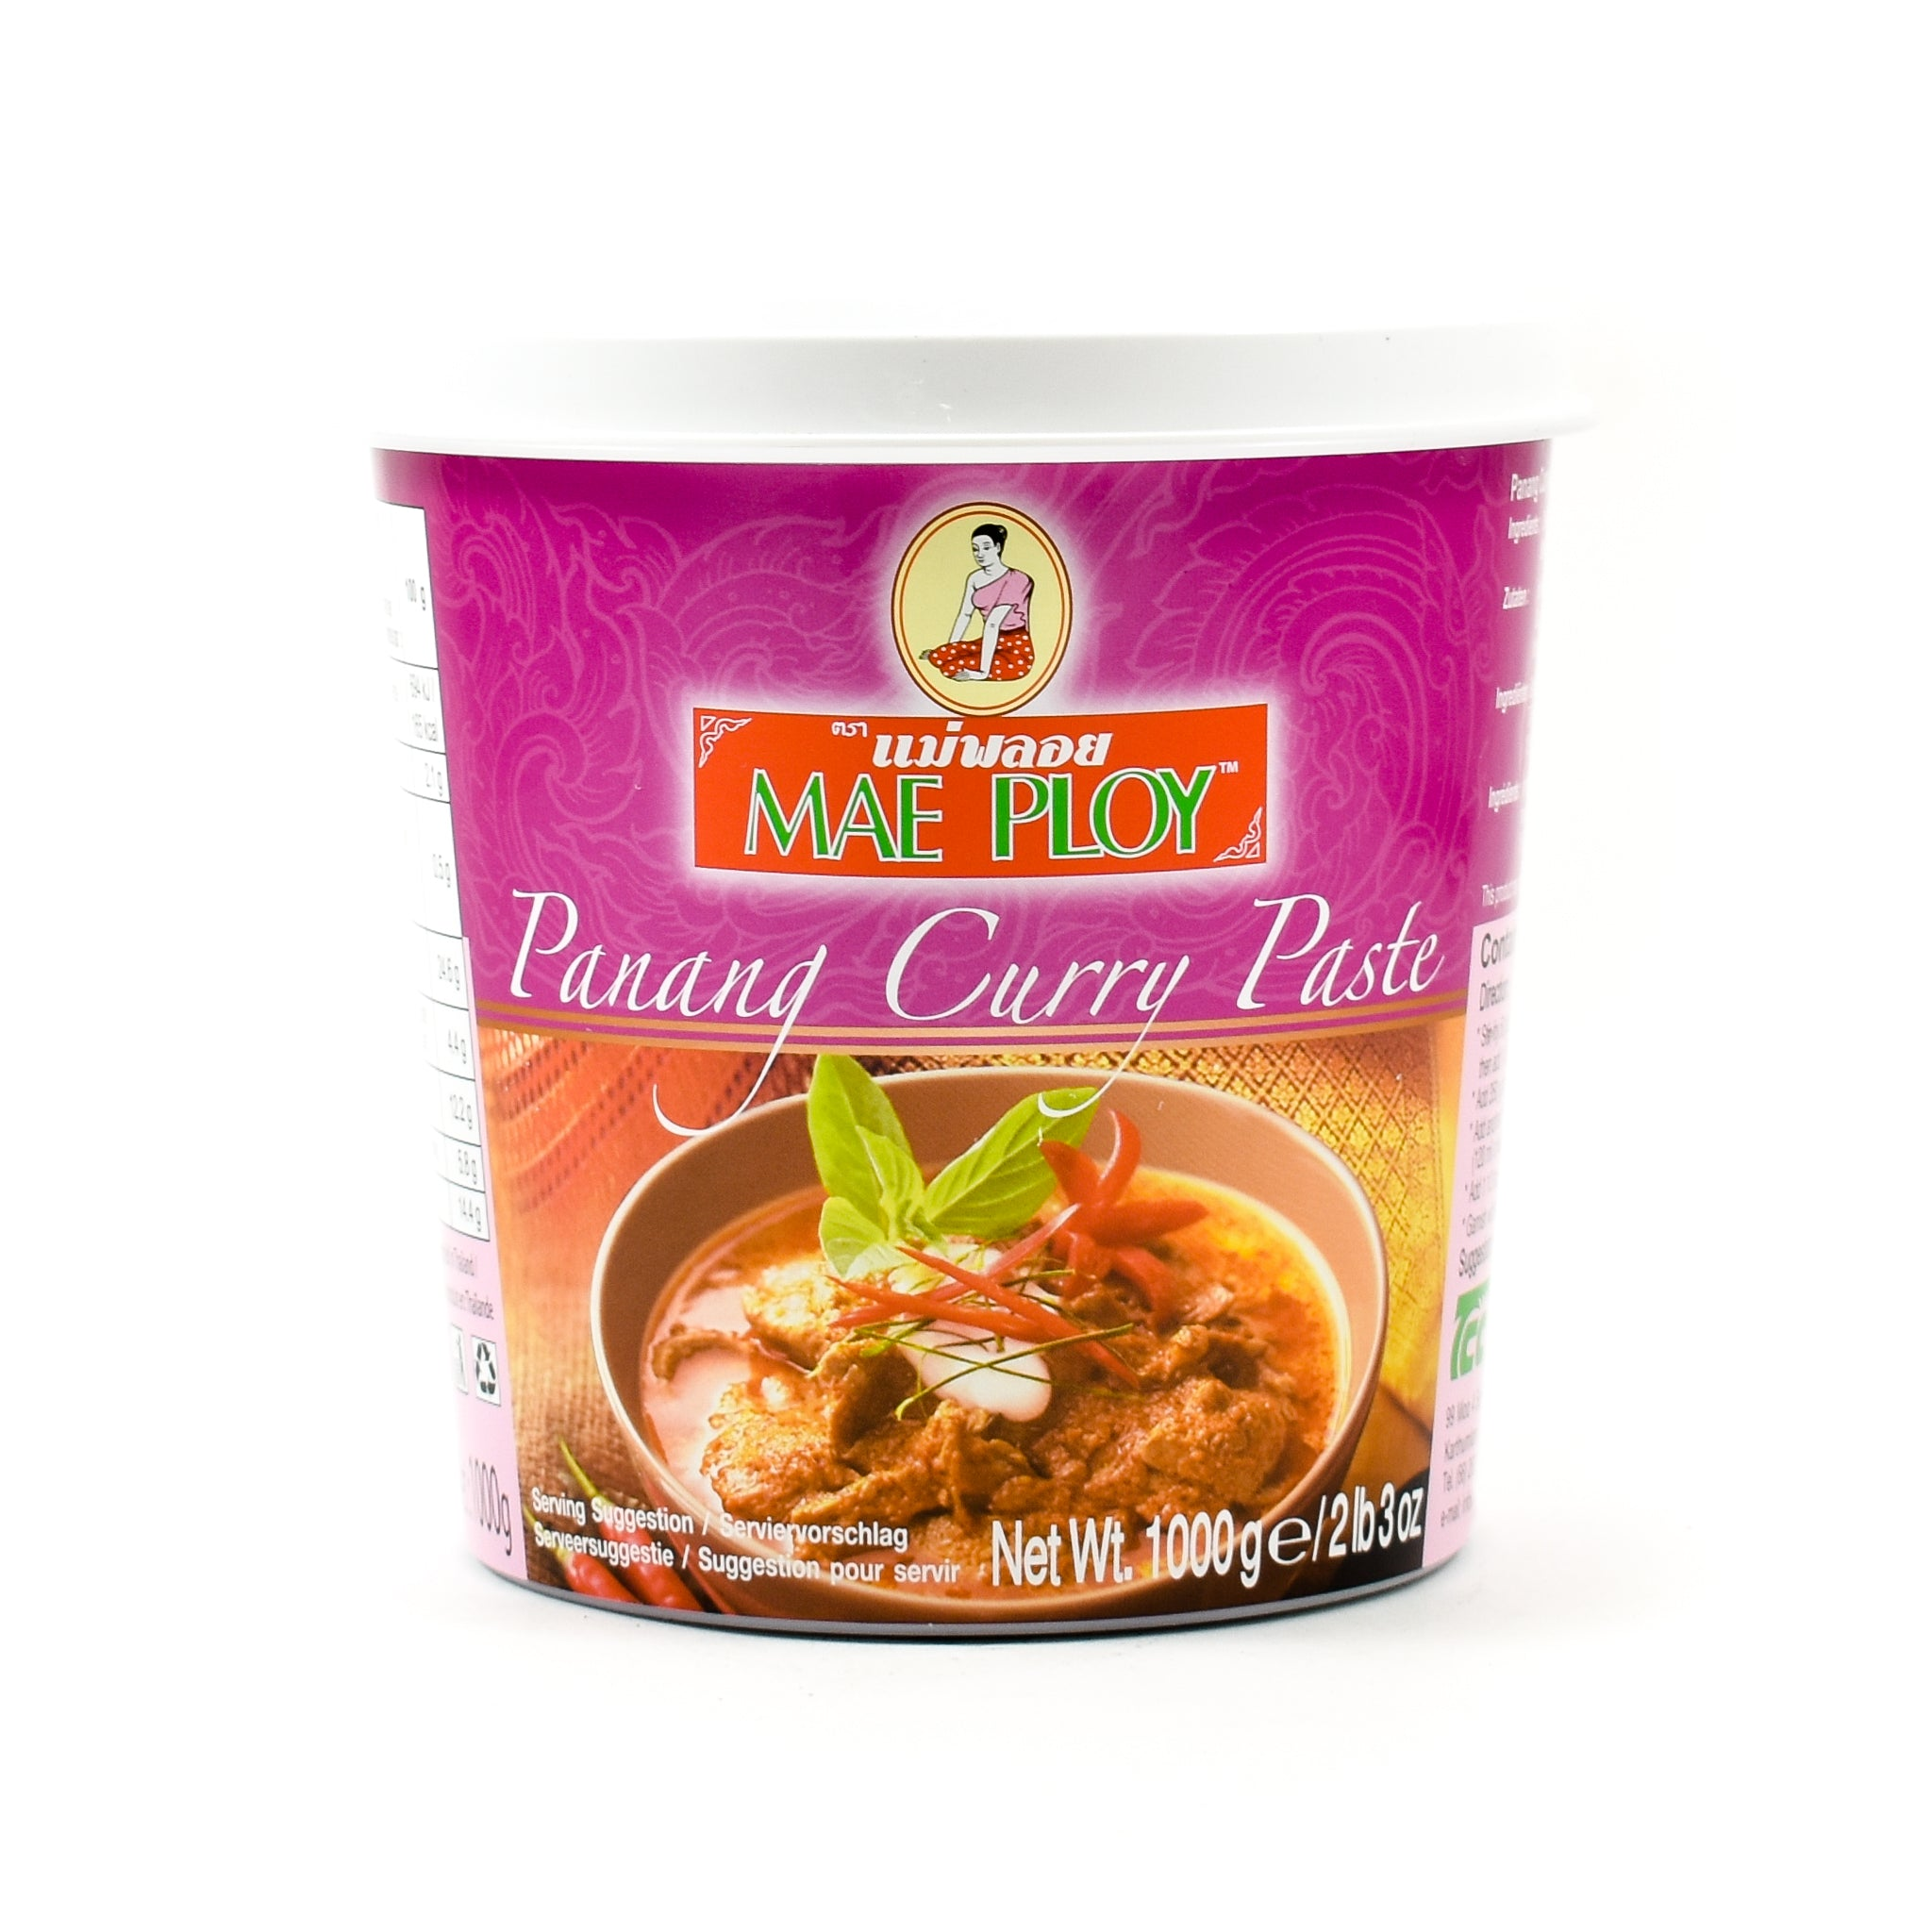 Mae Ploy Penang Curry Paste 1kg Ingredients Sauces & Condiments Asian Sauces & Condiments Southeast Asian Food